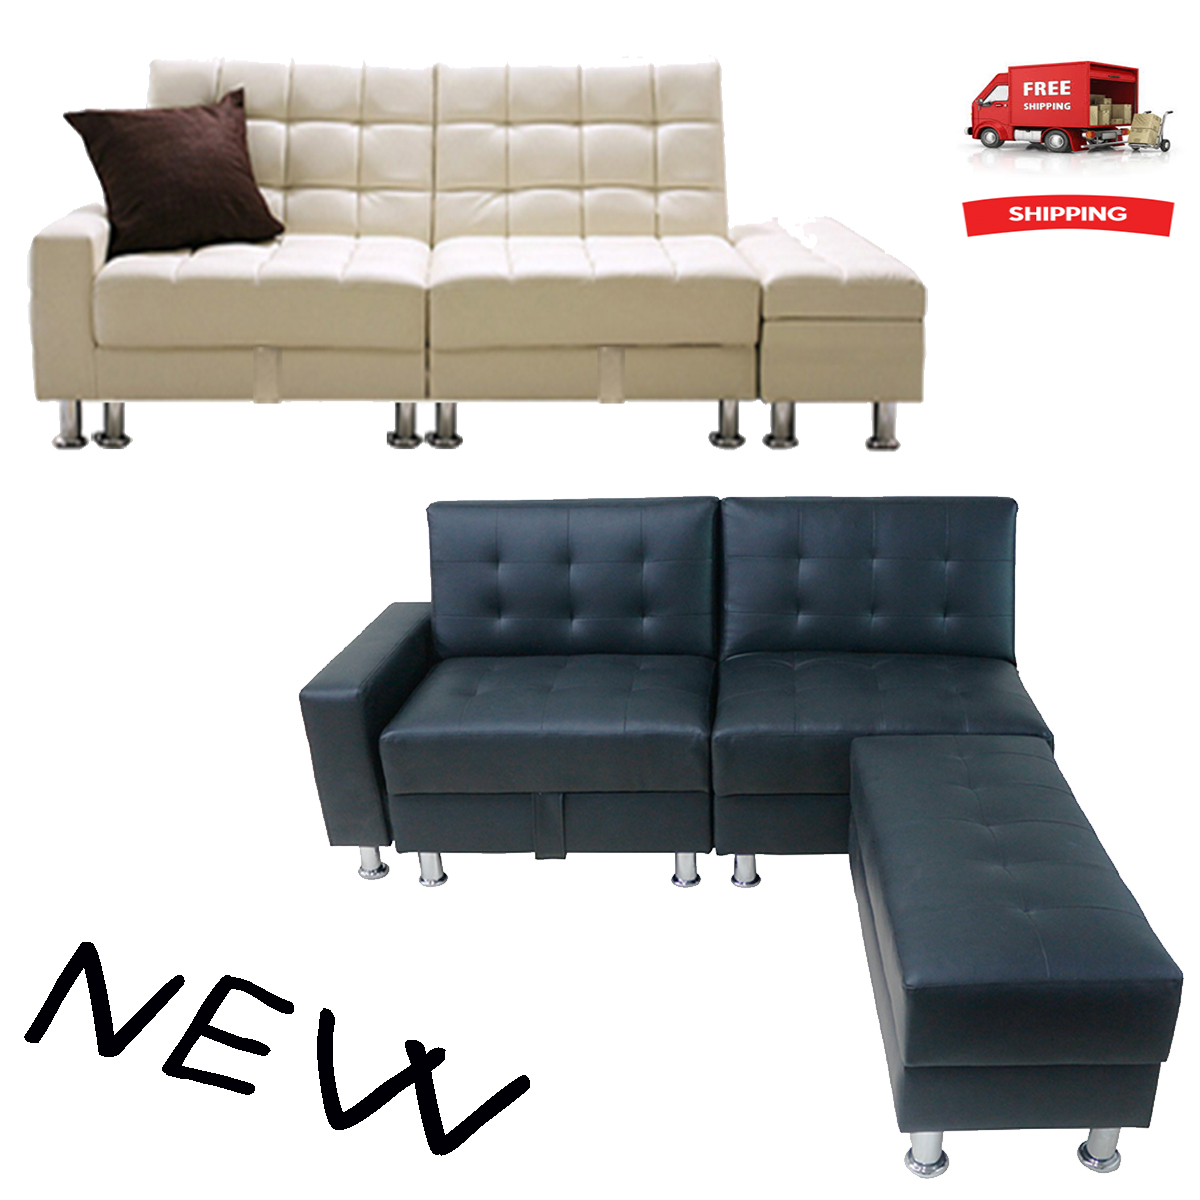 Image Is Loading New Style Sofa Bed Seater Foldable Storage Sectional